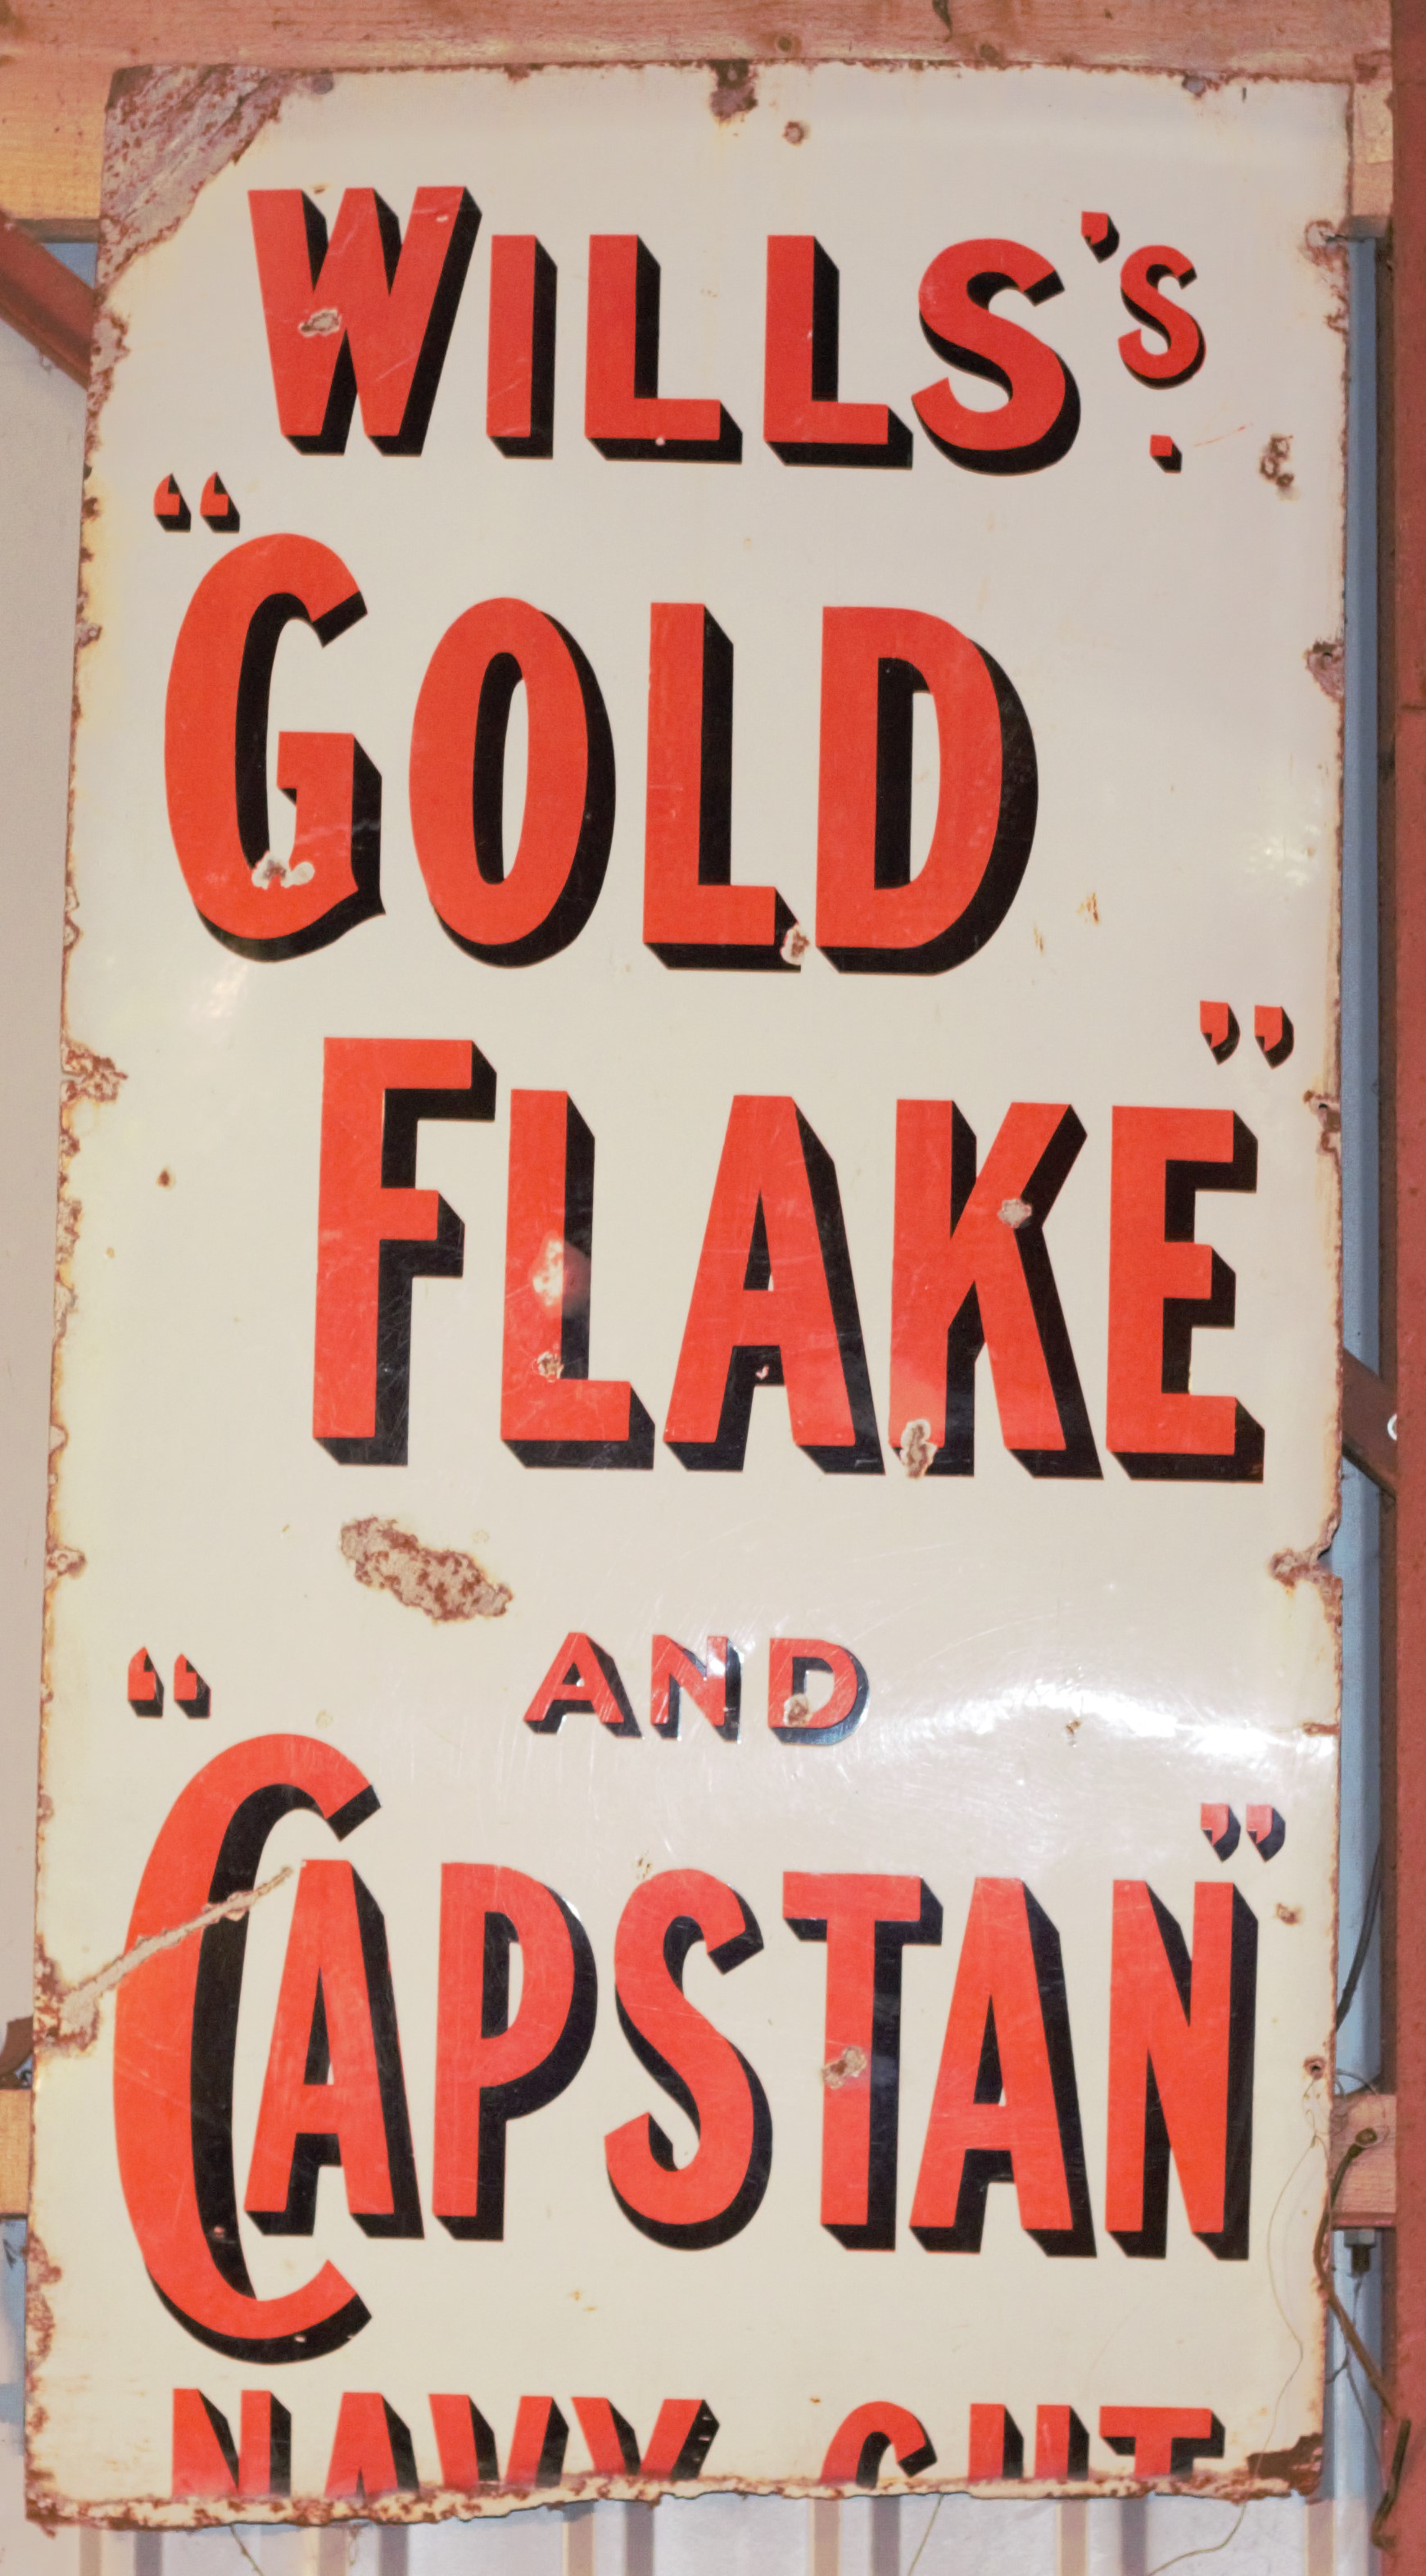 Vintage enamel advertising sign 'Wills's Gold Flake and Capstan Navy Cut', 153 x 79cm